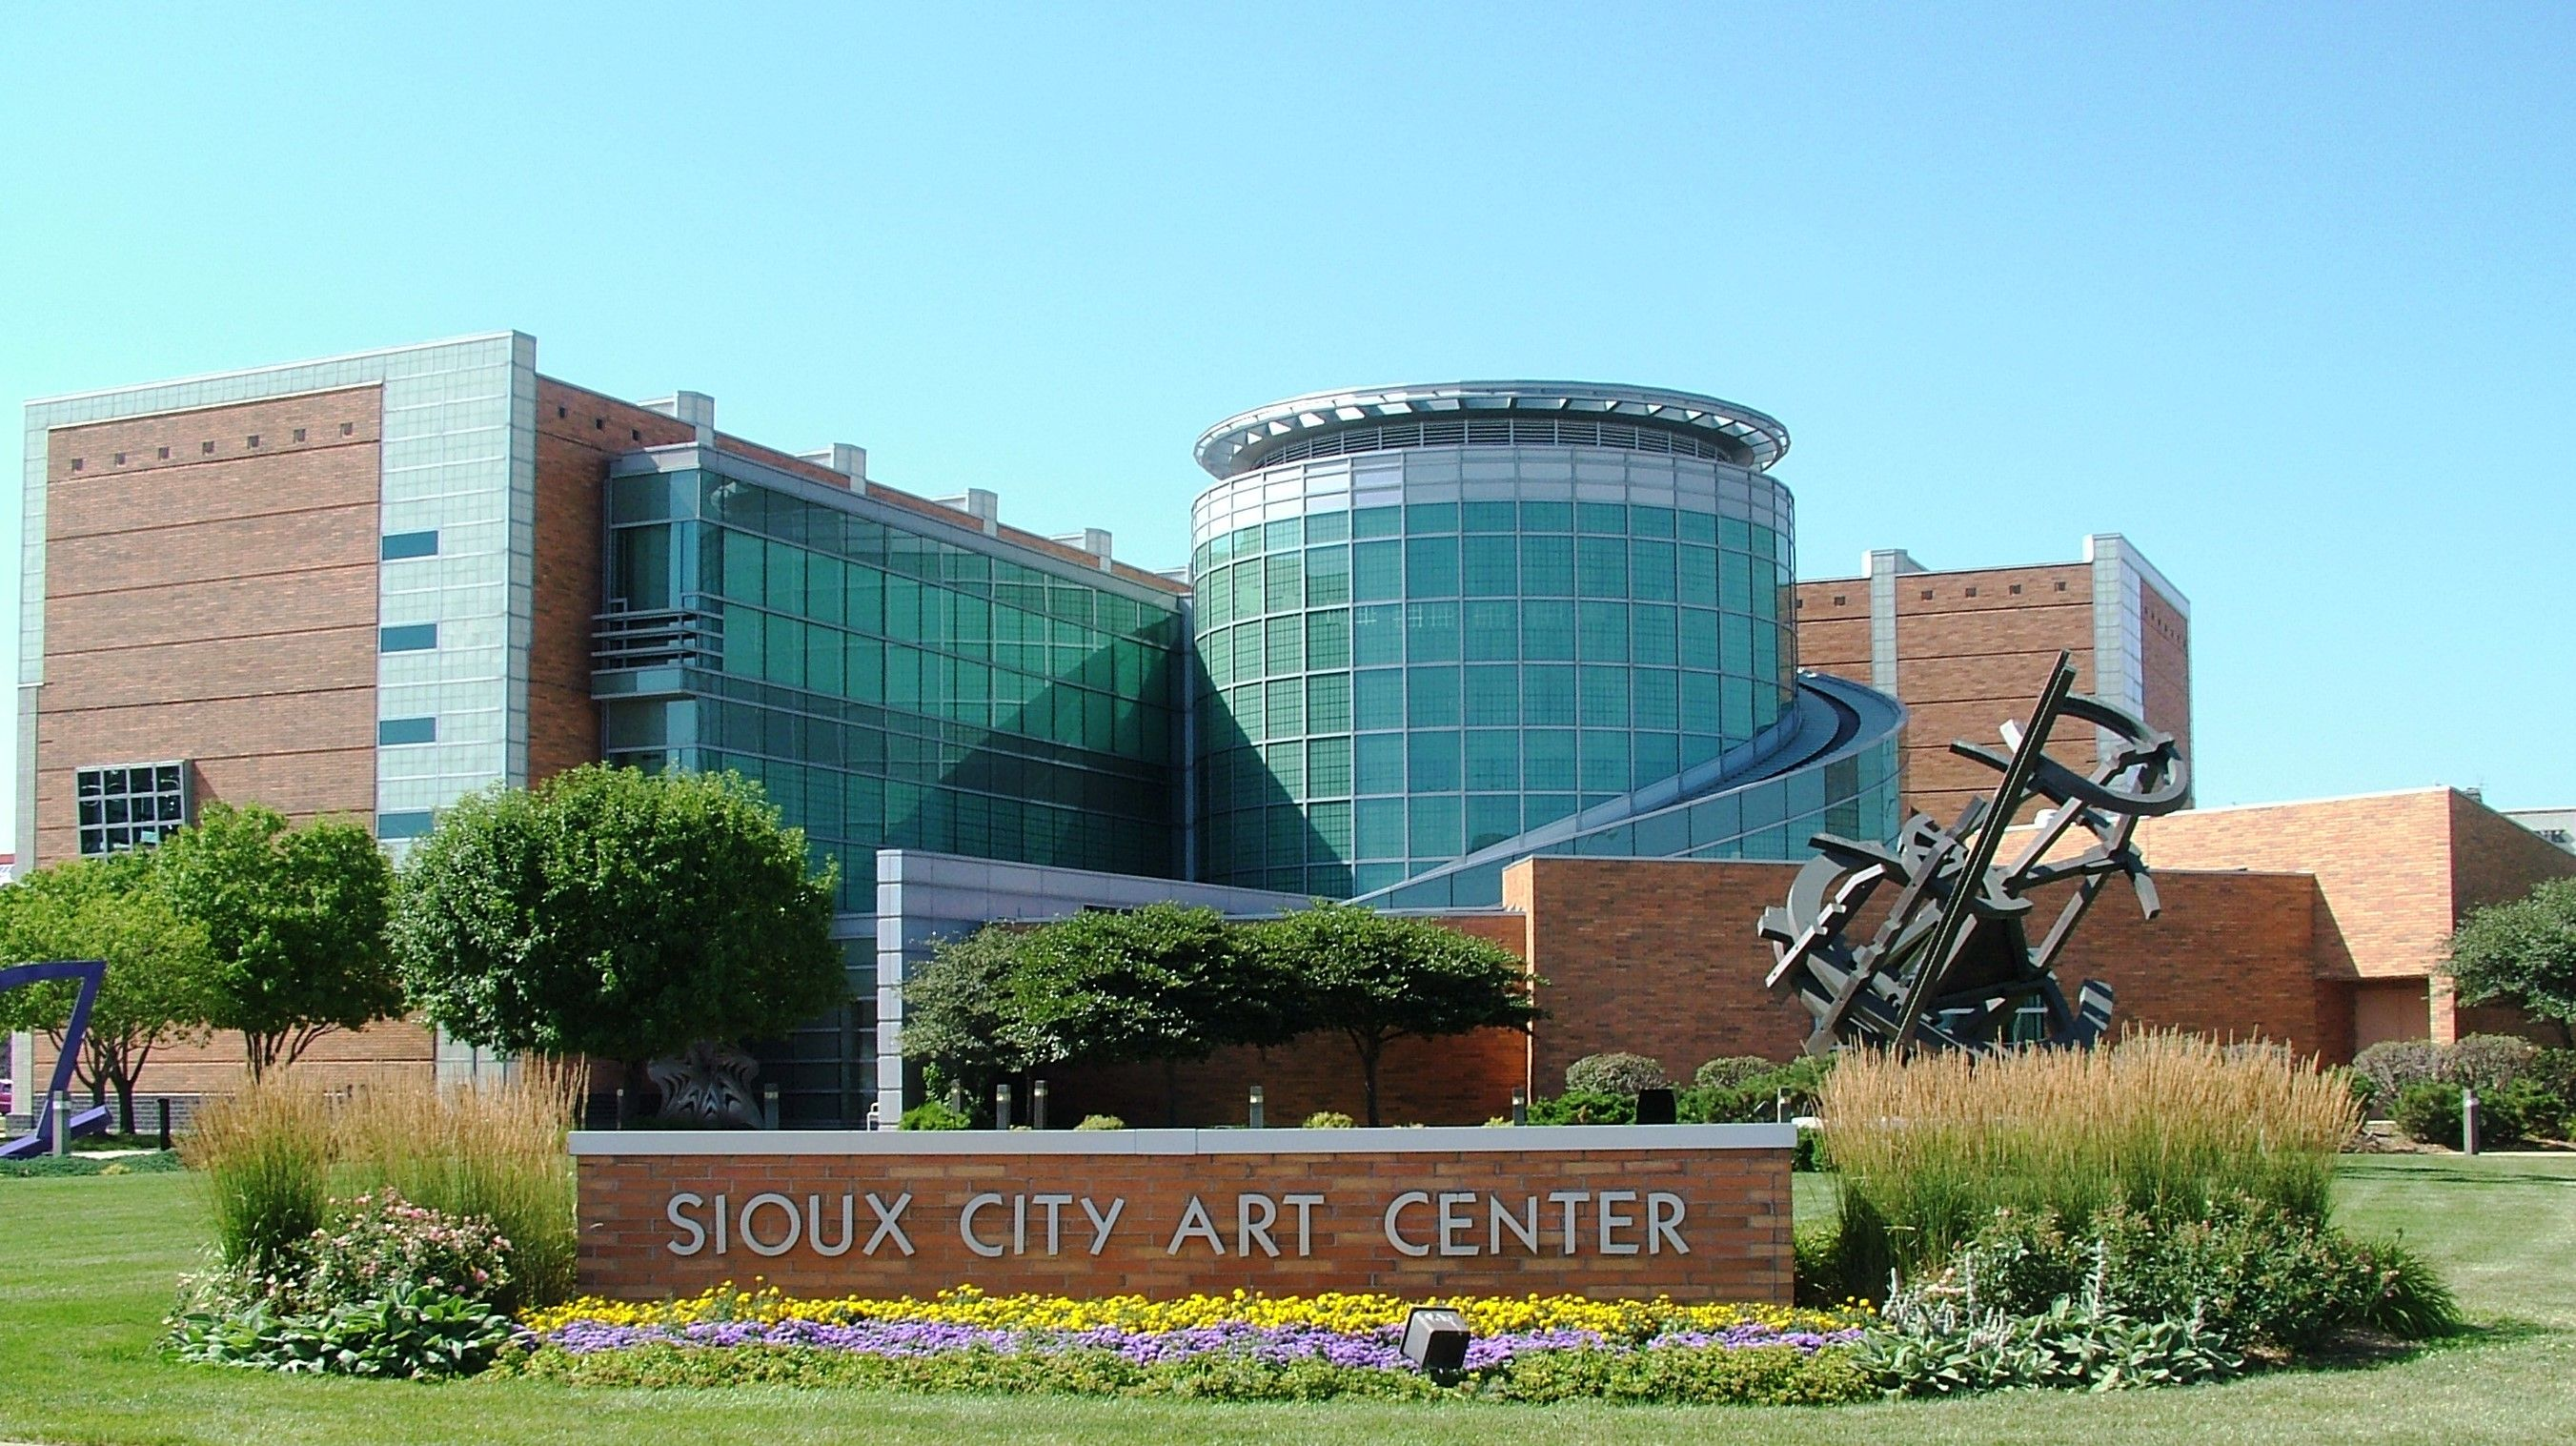 Sioux City Art Center Sioux City Iowa Www Siouxcityartcenter Org City Art Sioux City Art Center